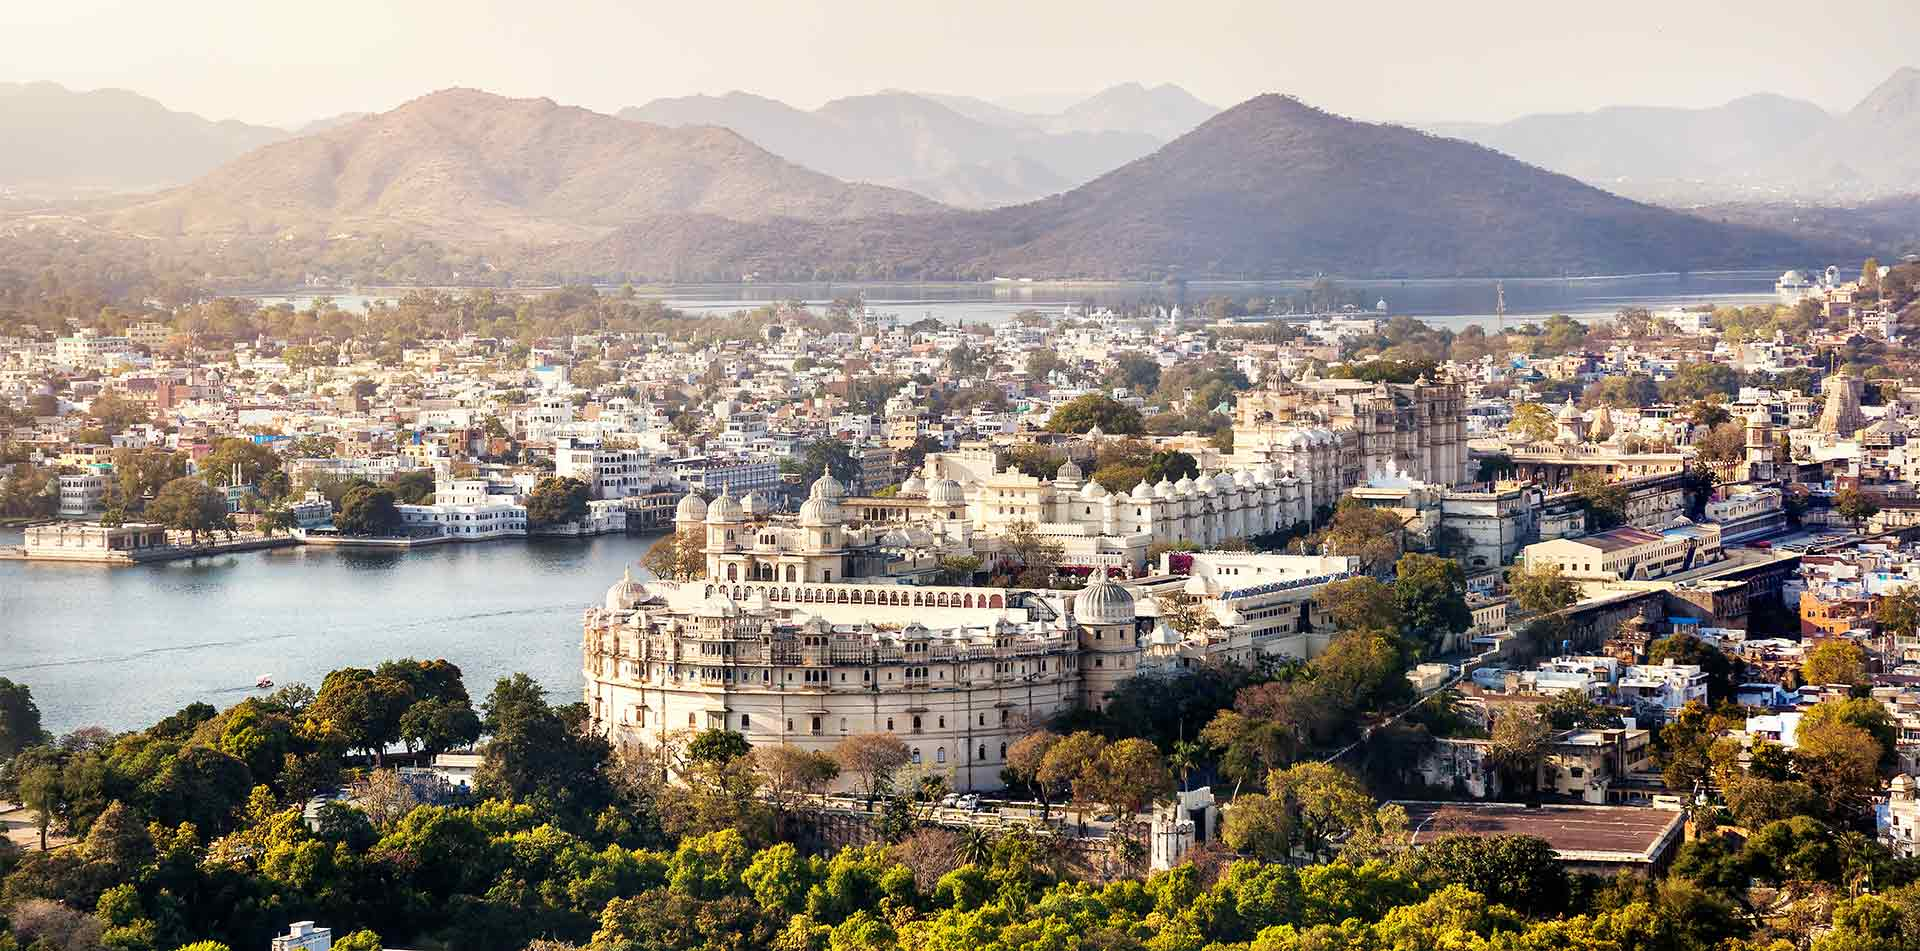 Asia India Lake Pichola with view of city palace in Udaipur Rajasthan - luxury vacation destinations